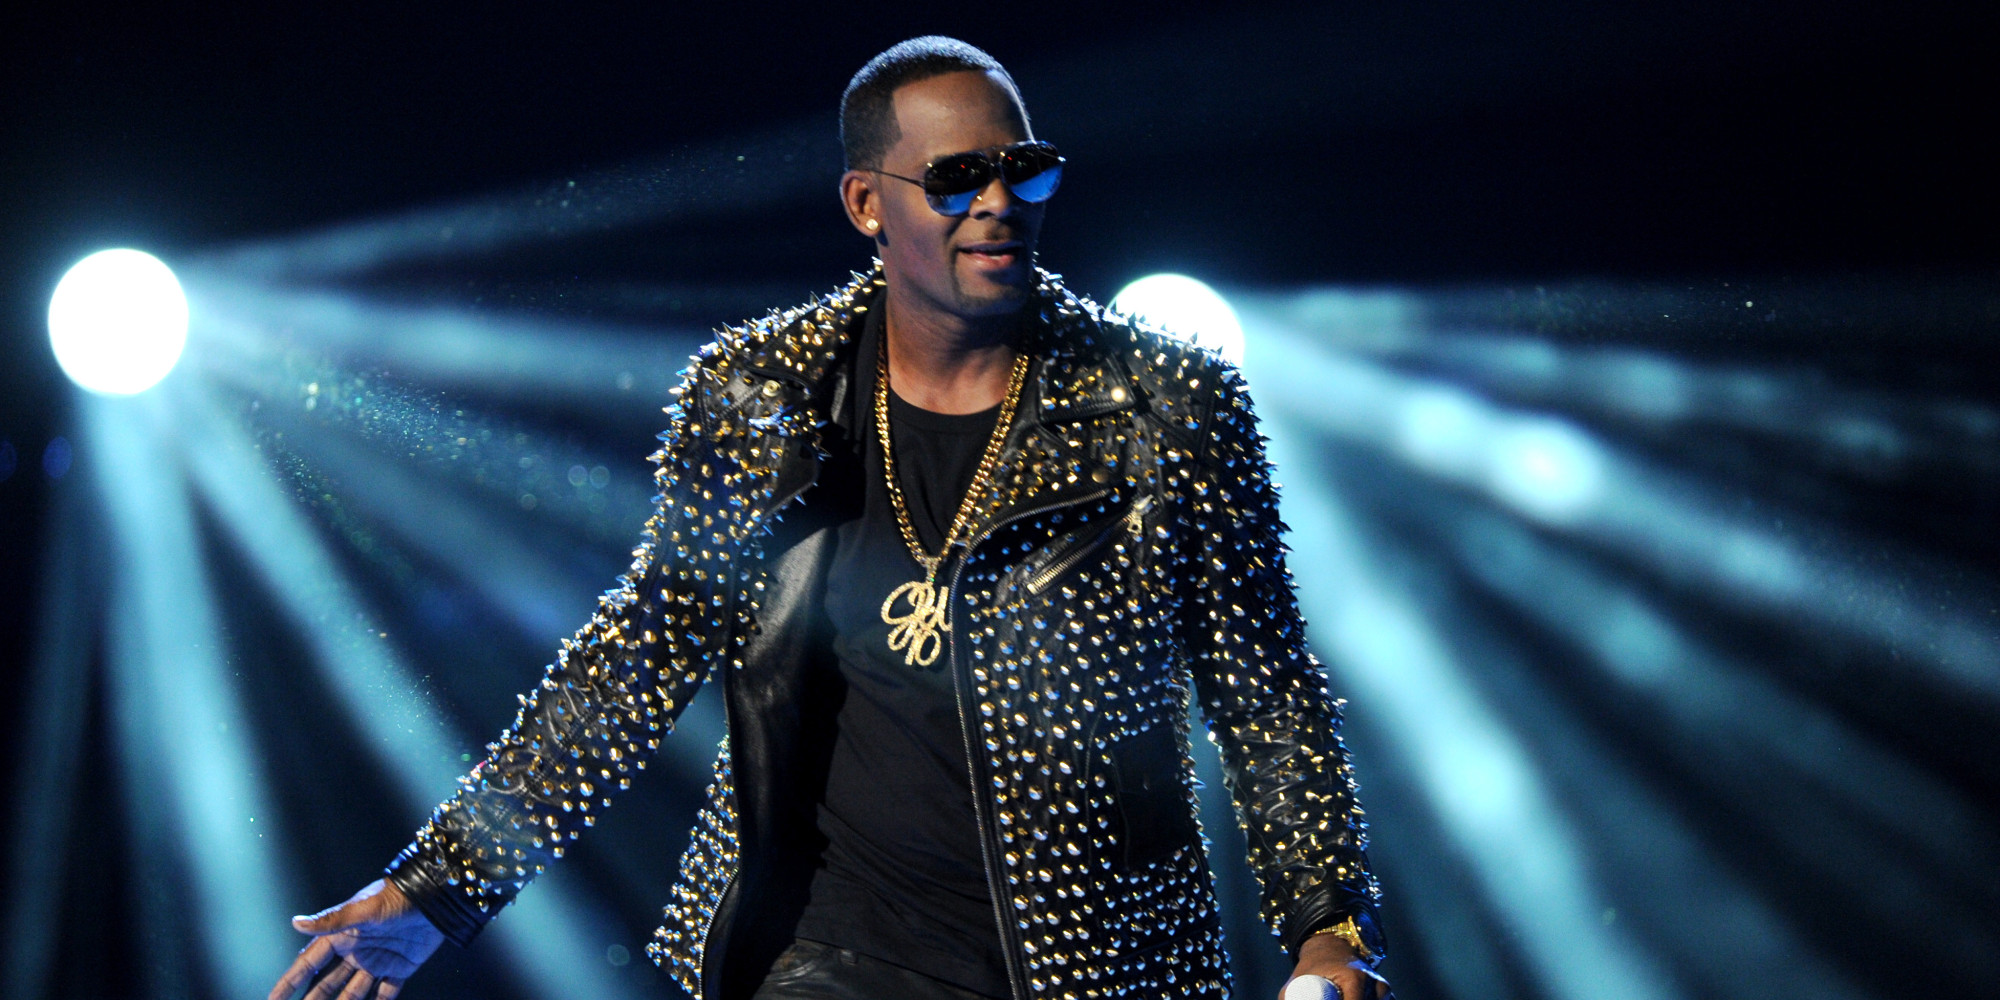 R Kelly Wallpapers High Resolution And Quality Download